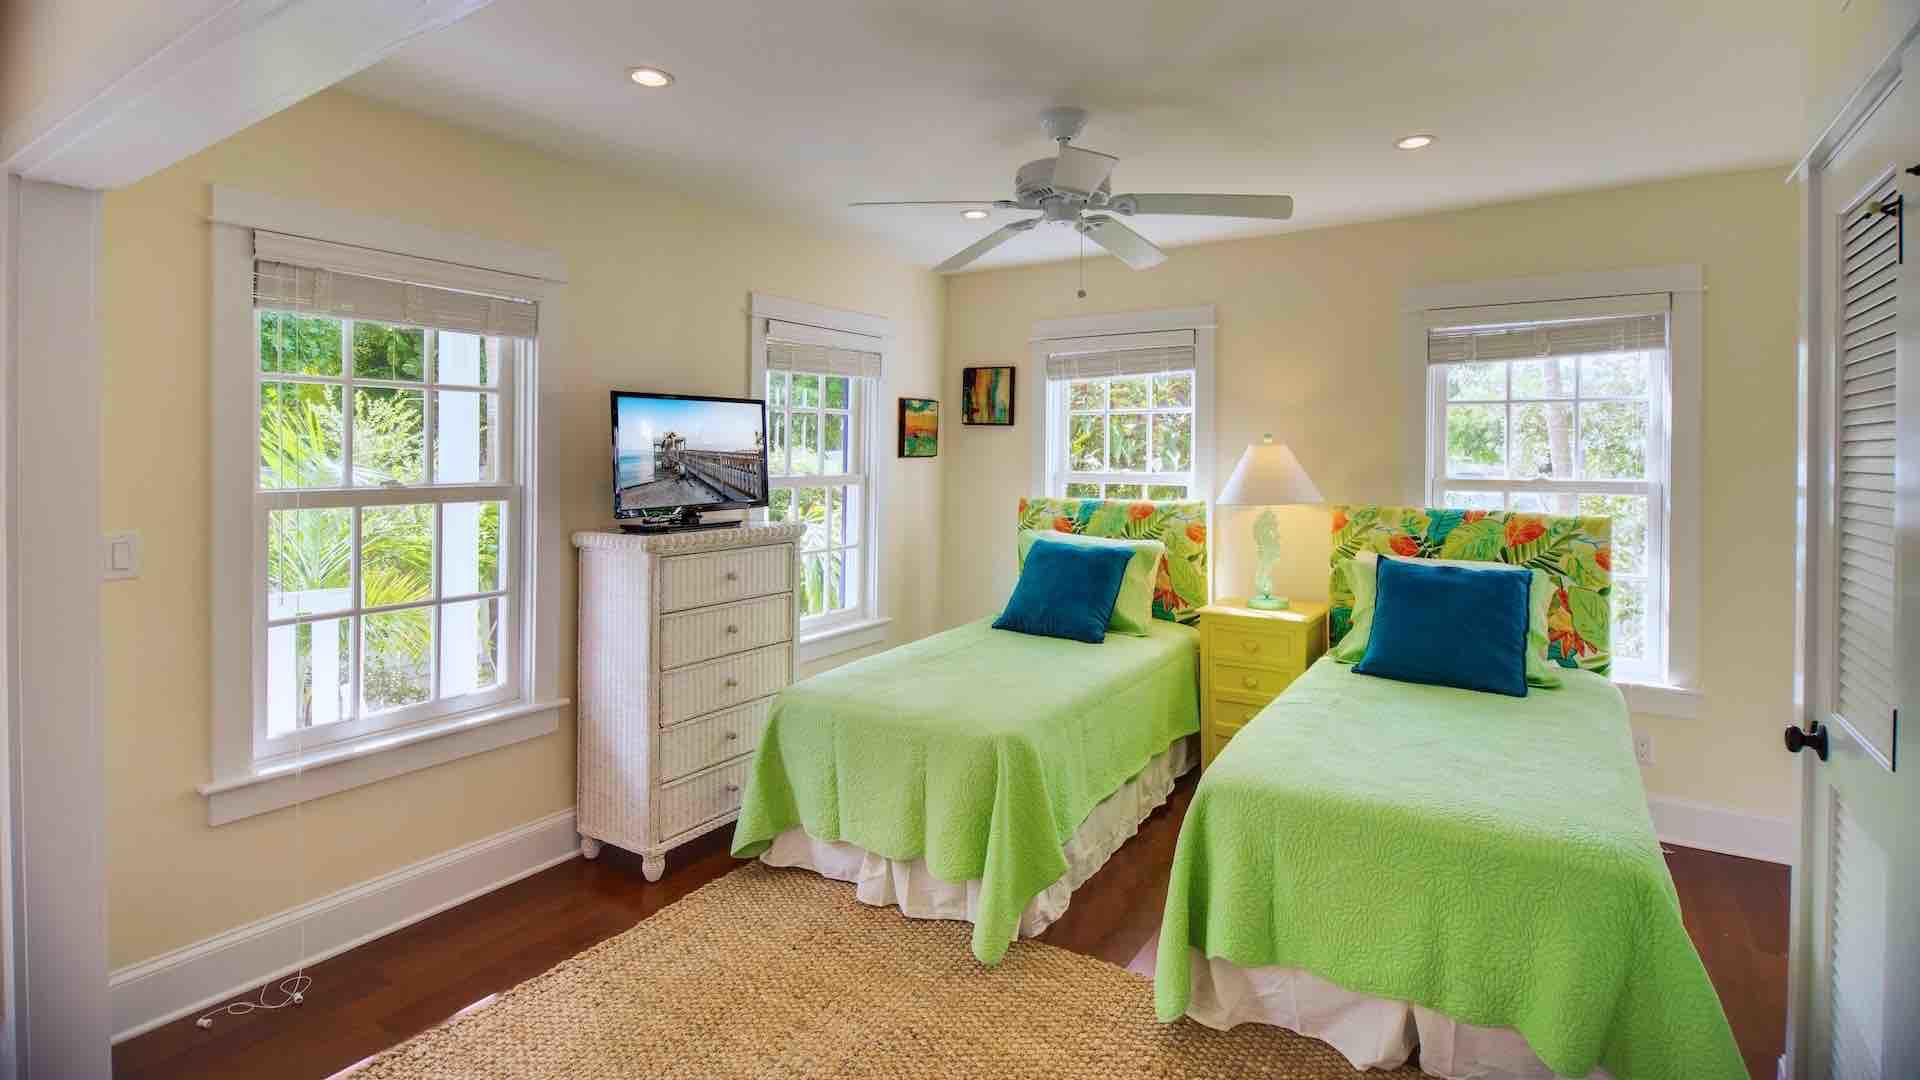 The first floor bedroom has two twin beds that can convert to a King bed upon request...